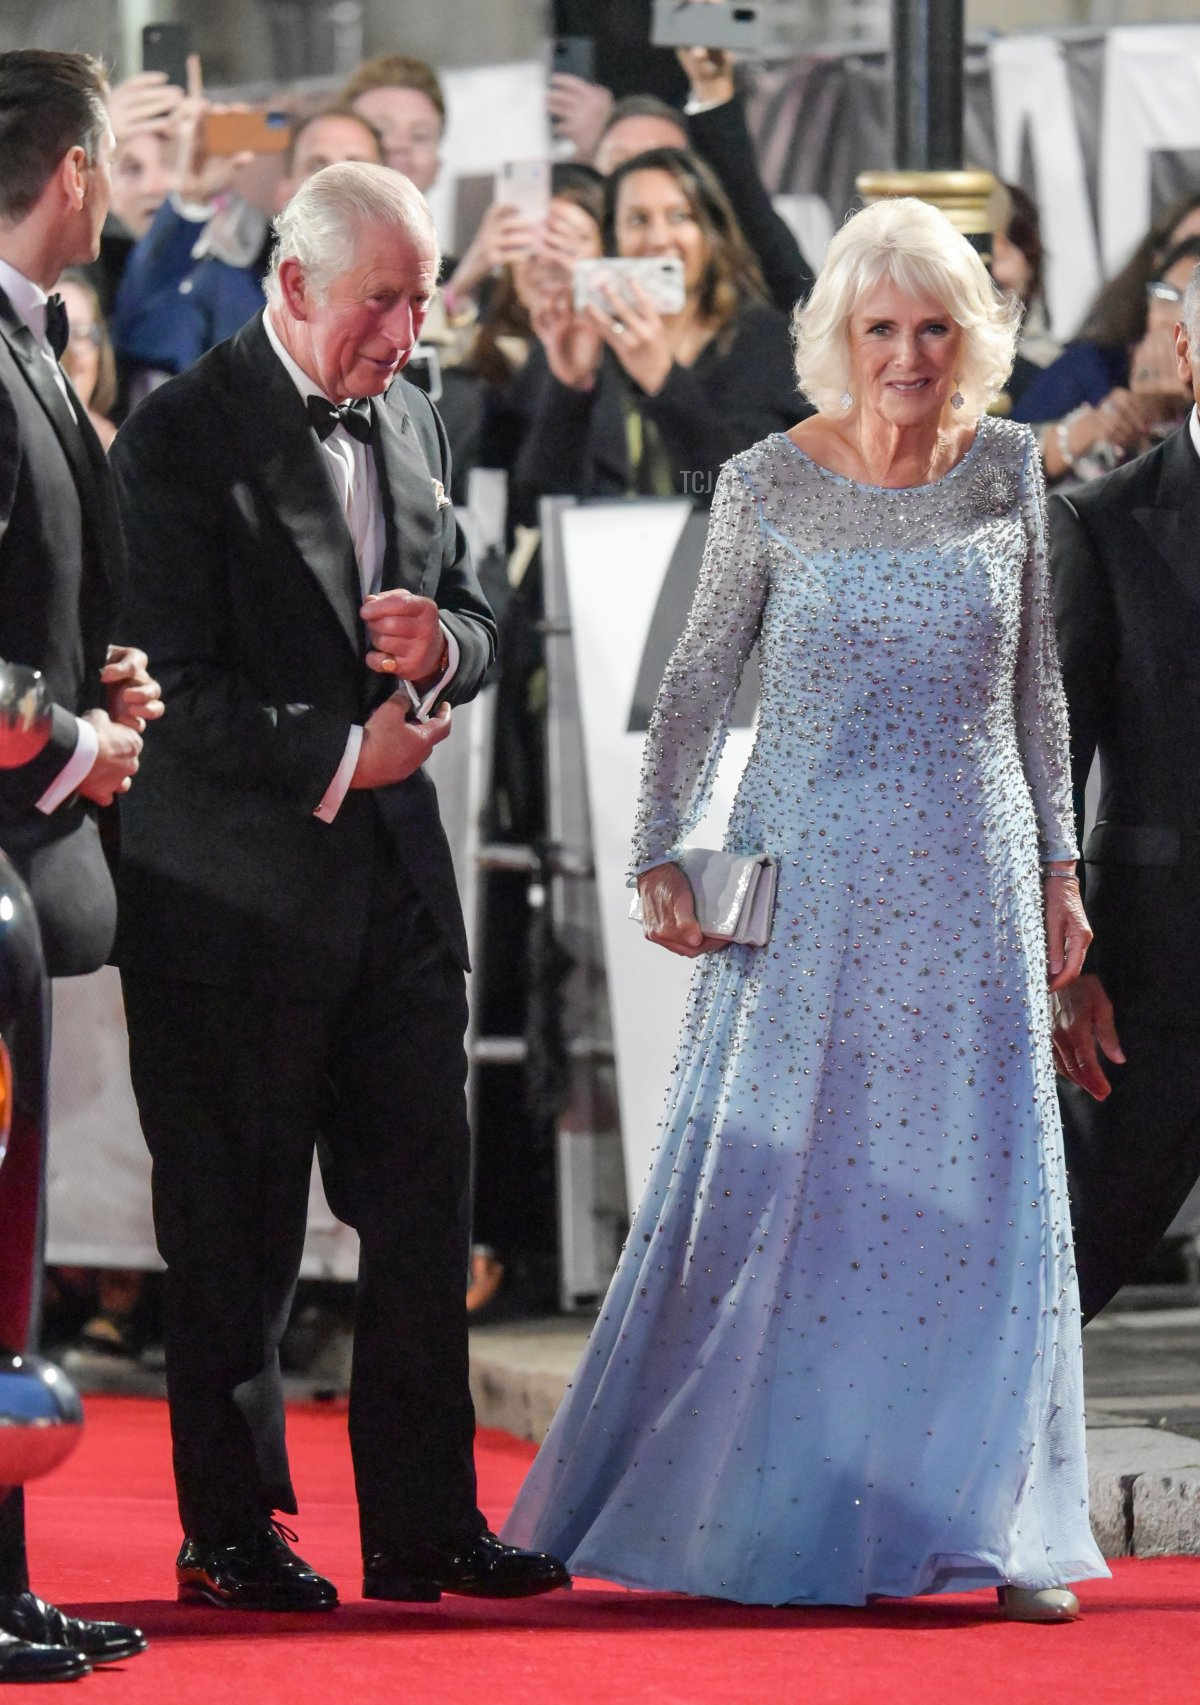 """Prince Charles, Prince of Wales and Camilla, Duchess of Cornwall attend the """"No Time To Die"""" World Premiere at Royal Albert Hall on September 28, 2021 in London, England"""